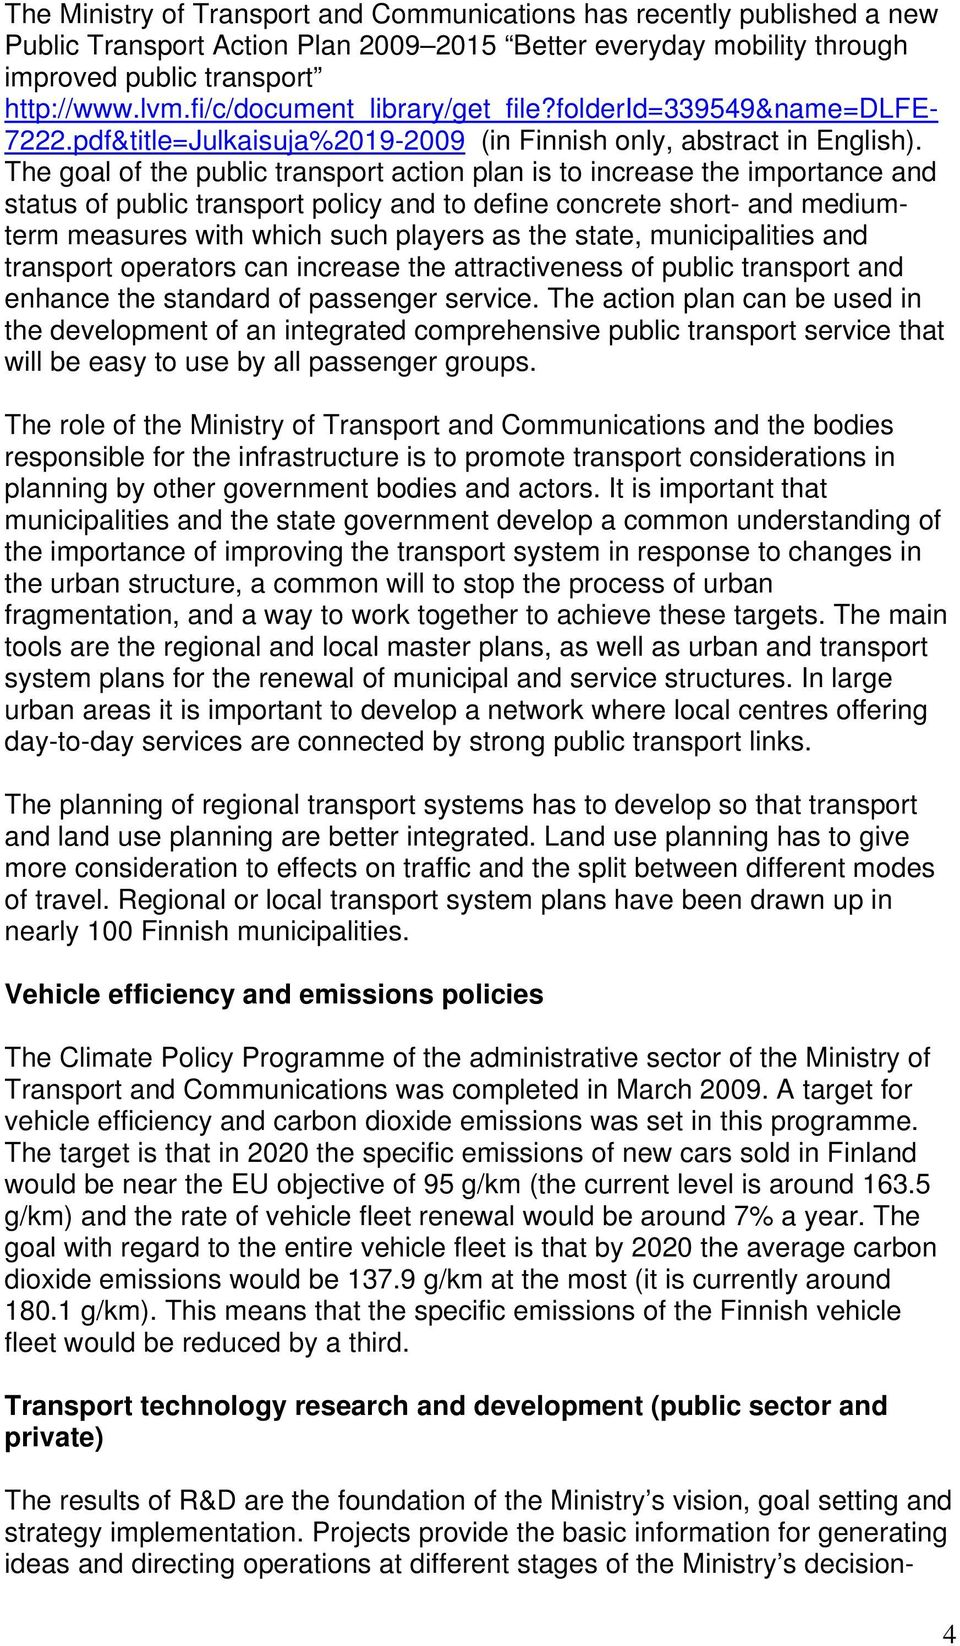 The goal of the public transport action plan is to increase the importance and status of public transport policy and to define concrete short- and mediumterm measures with which such players as the